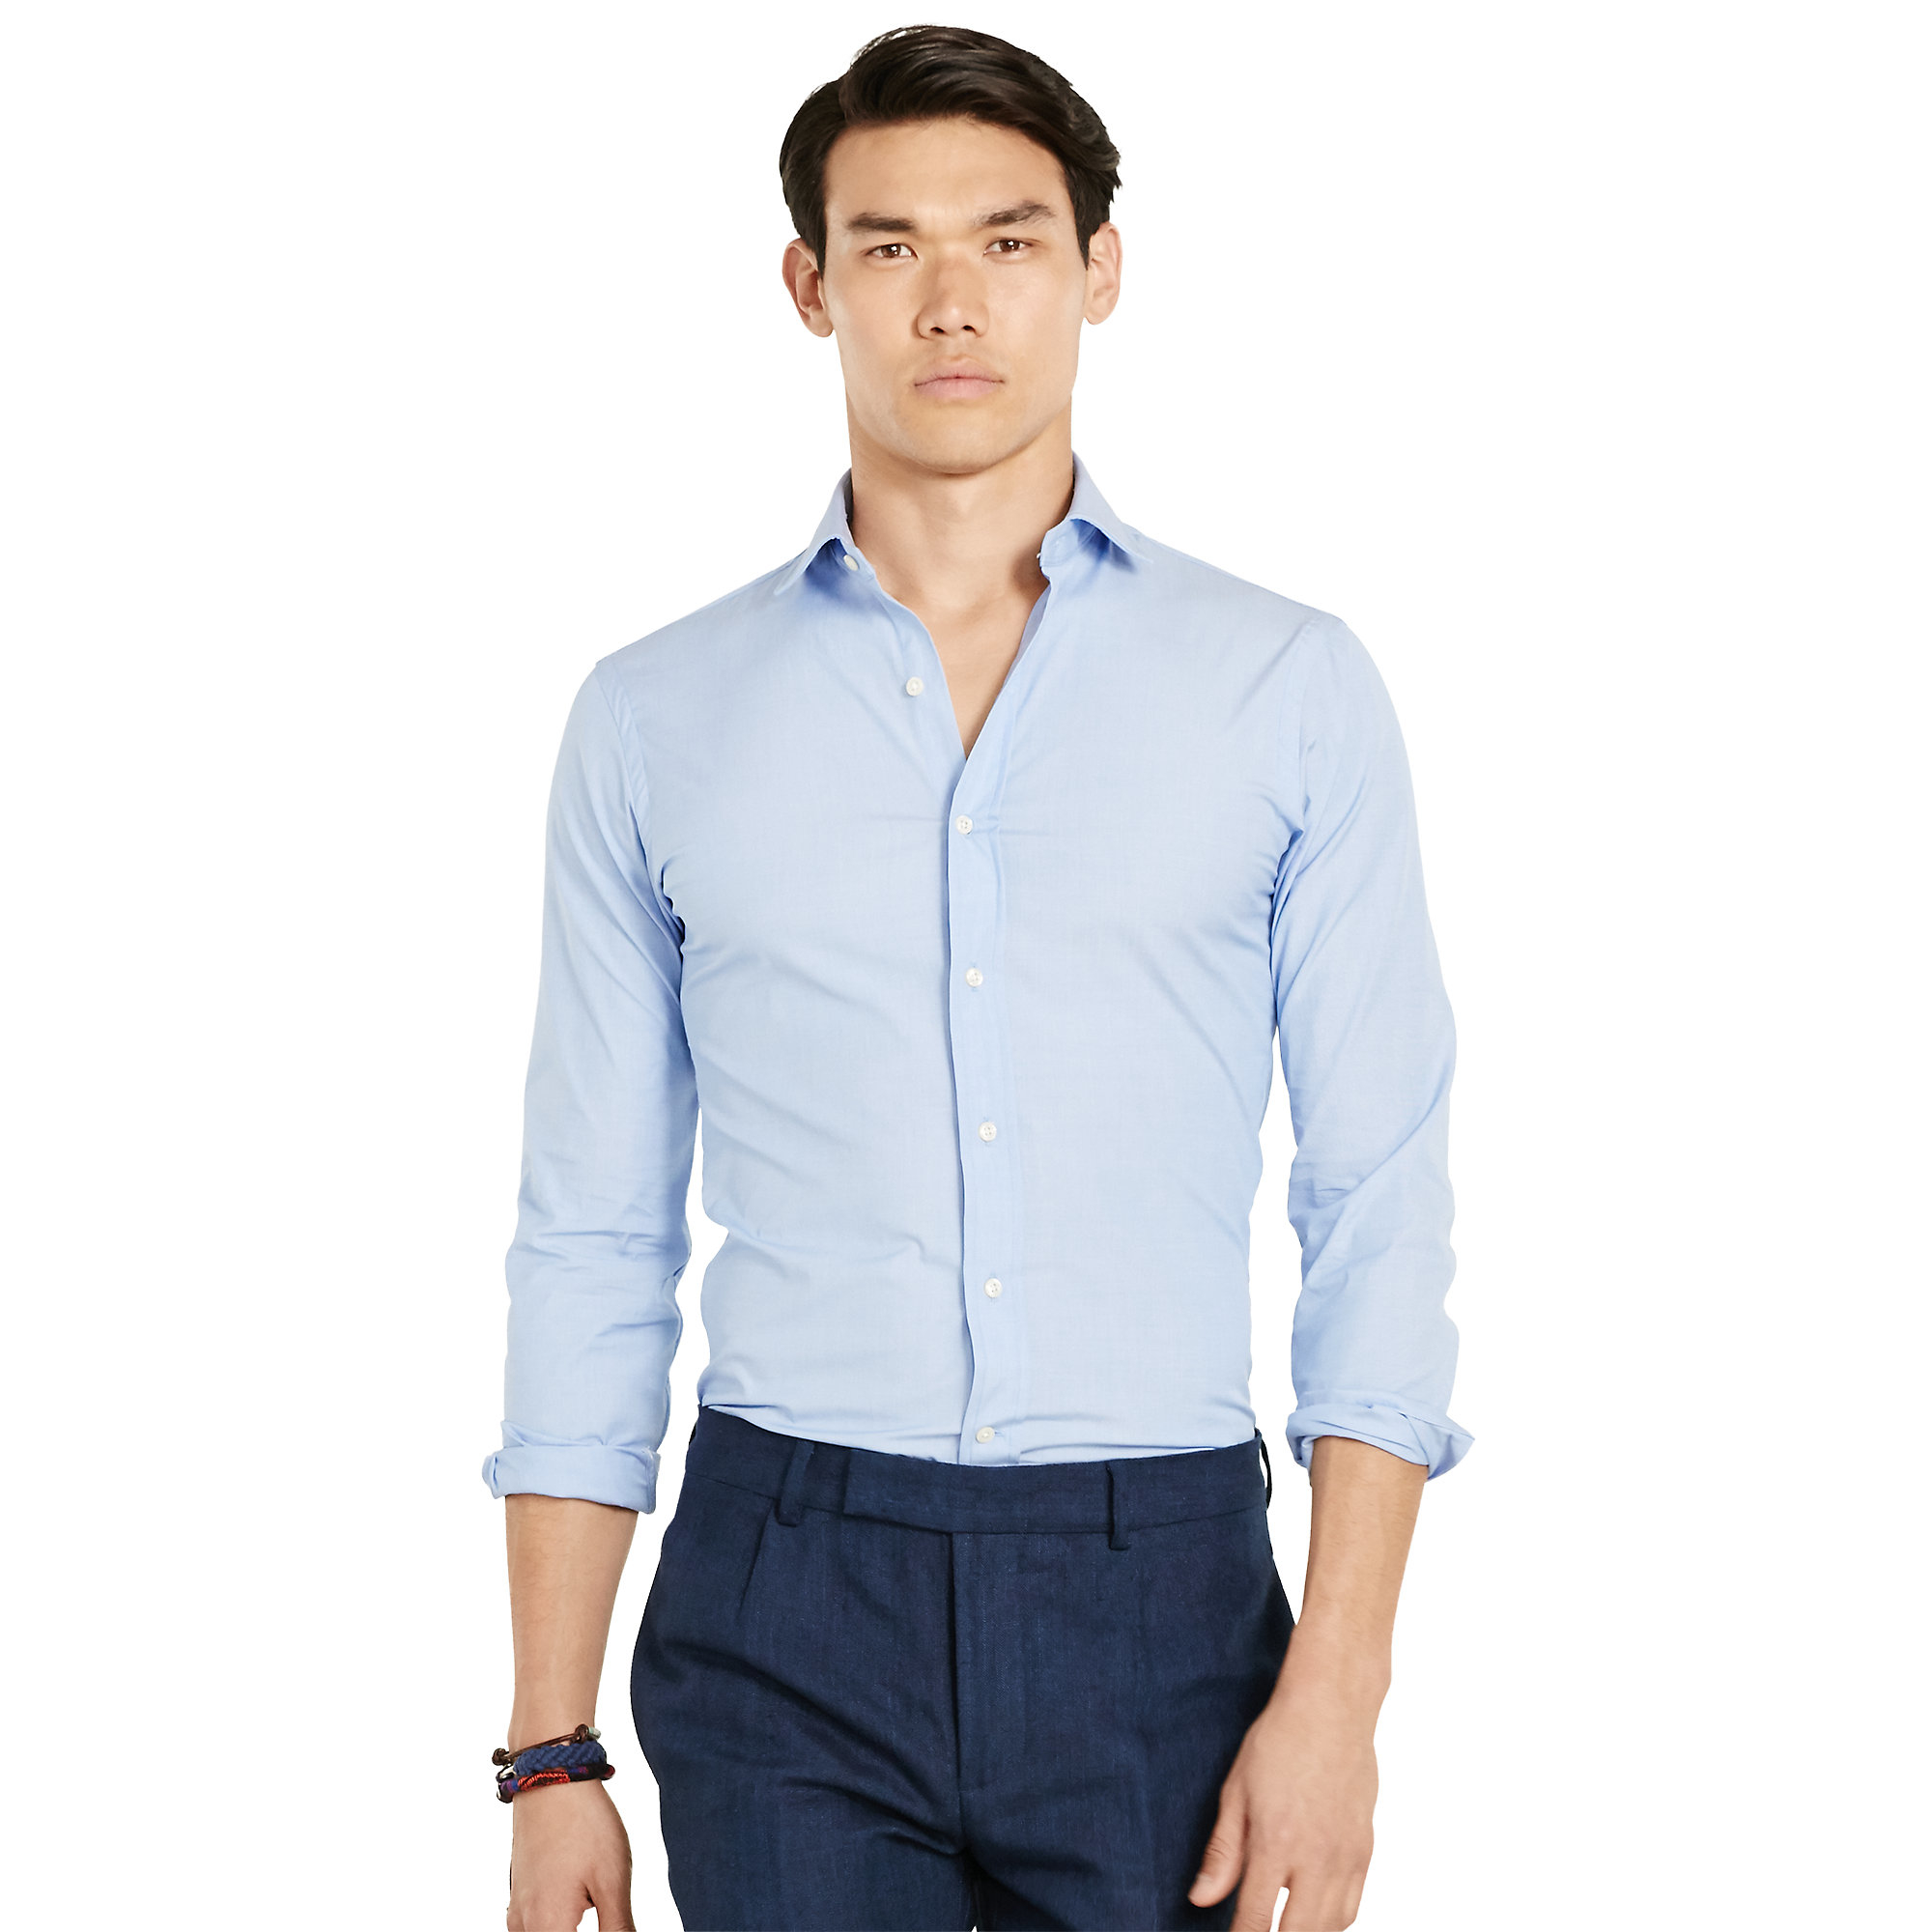 Polo ralph lauren estate slim fit stretch shirt in blue for Stretch polo shirt mens